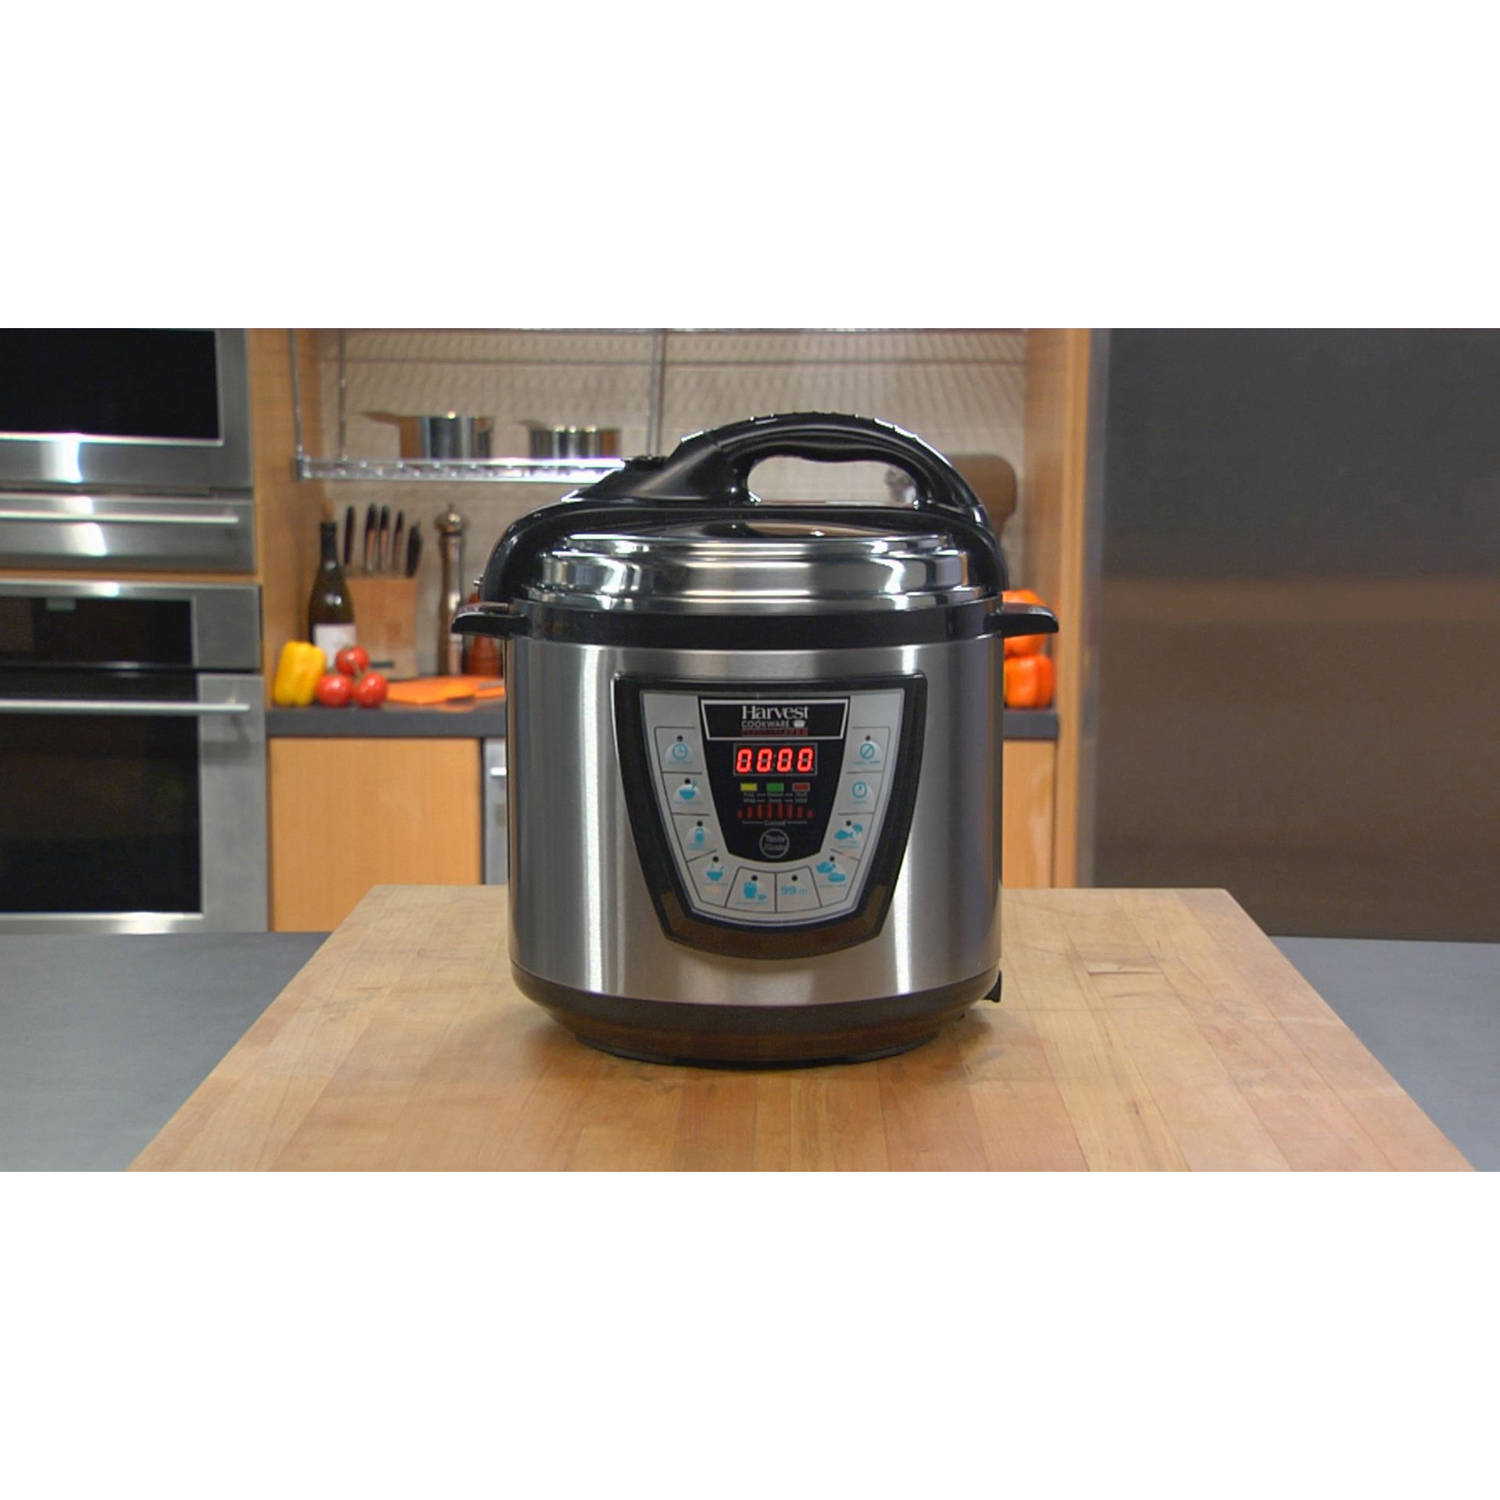 harvest cookware electric original pressure pro 6-quart pressure